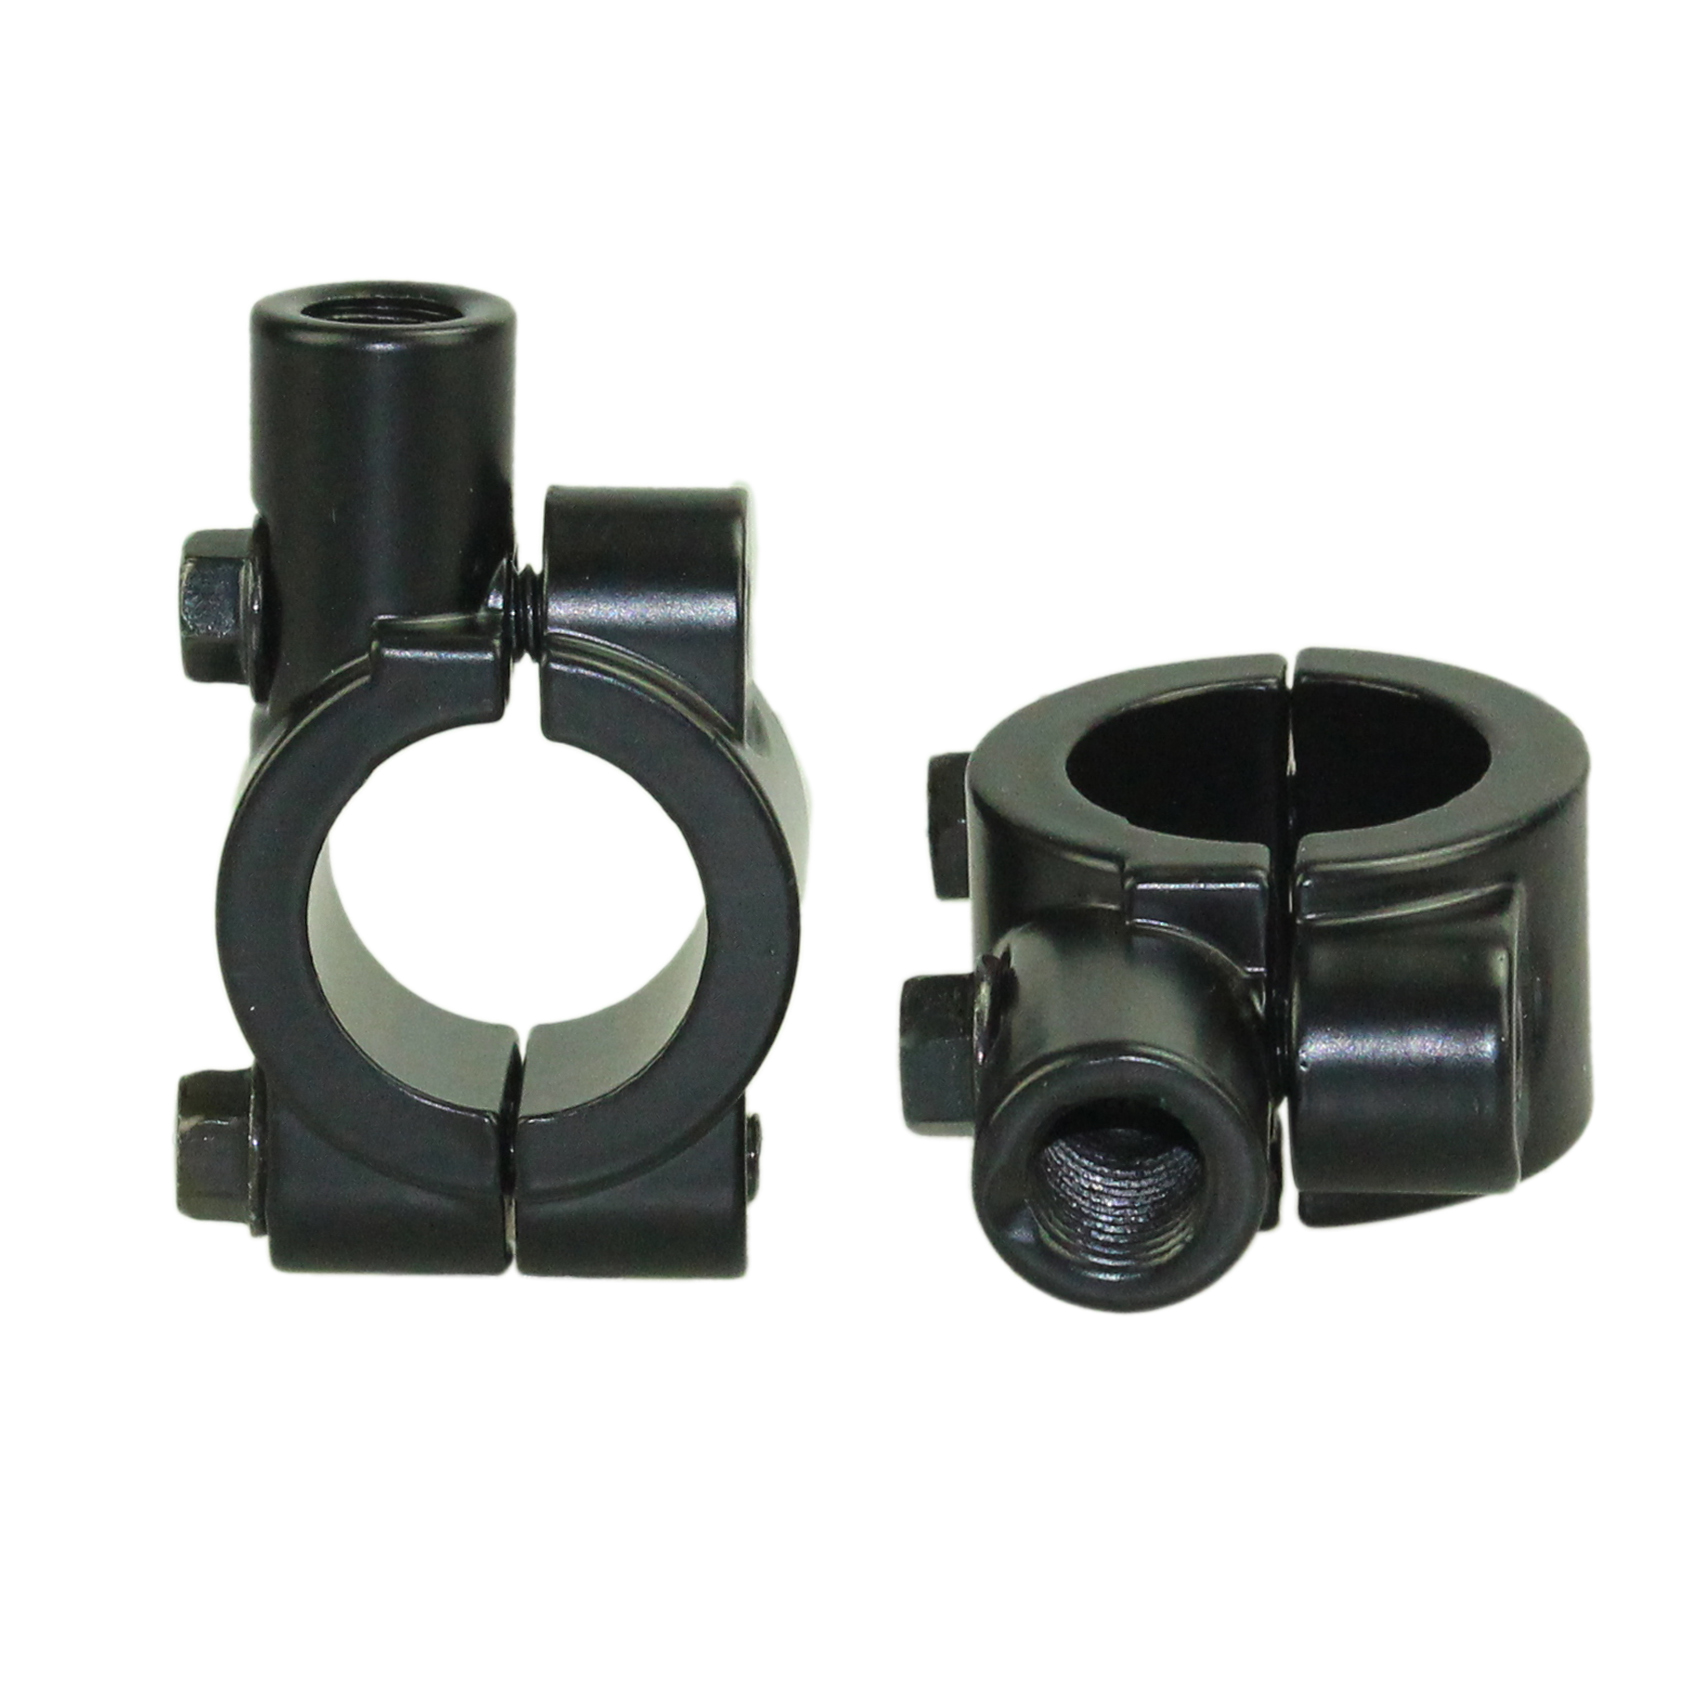 "10MM 7/8"" UNIVERSAL BLACK MOTORCYCLE HANDLEBAR MIRROR MOUNT ALUMINUM CLAMP"